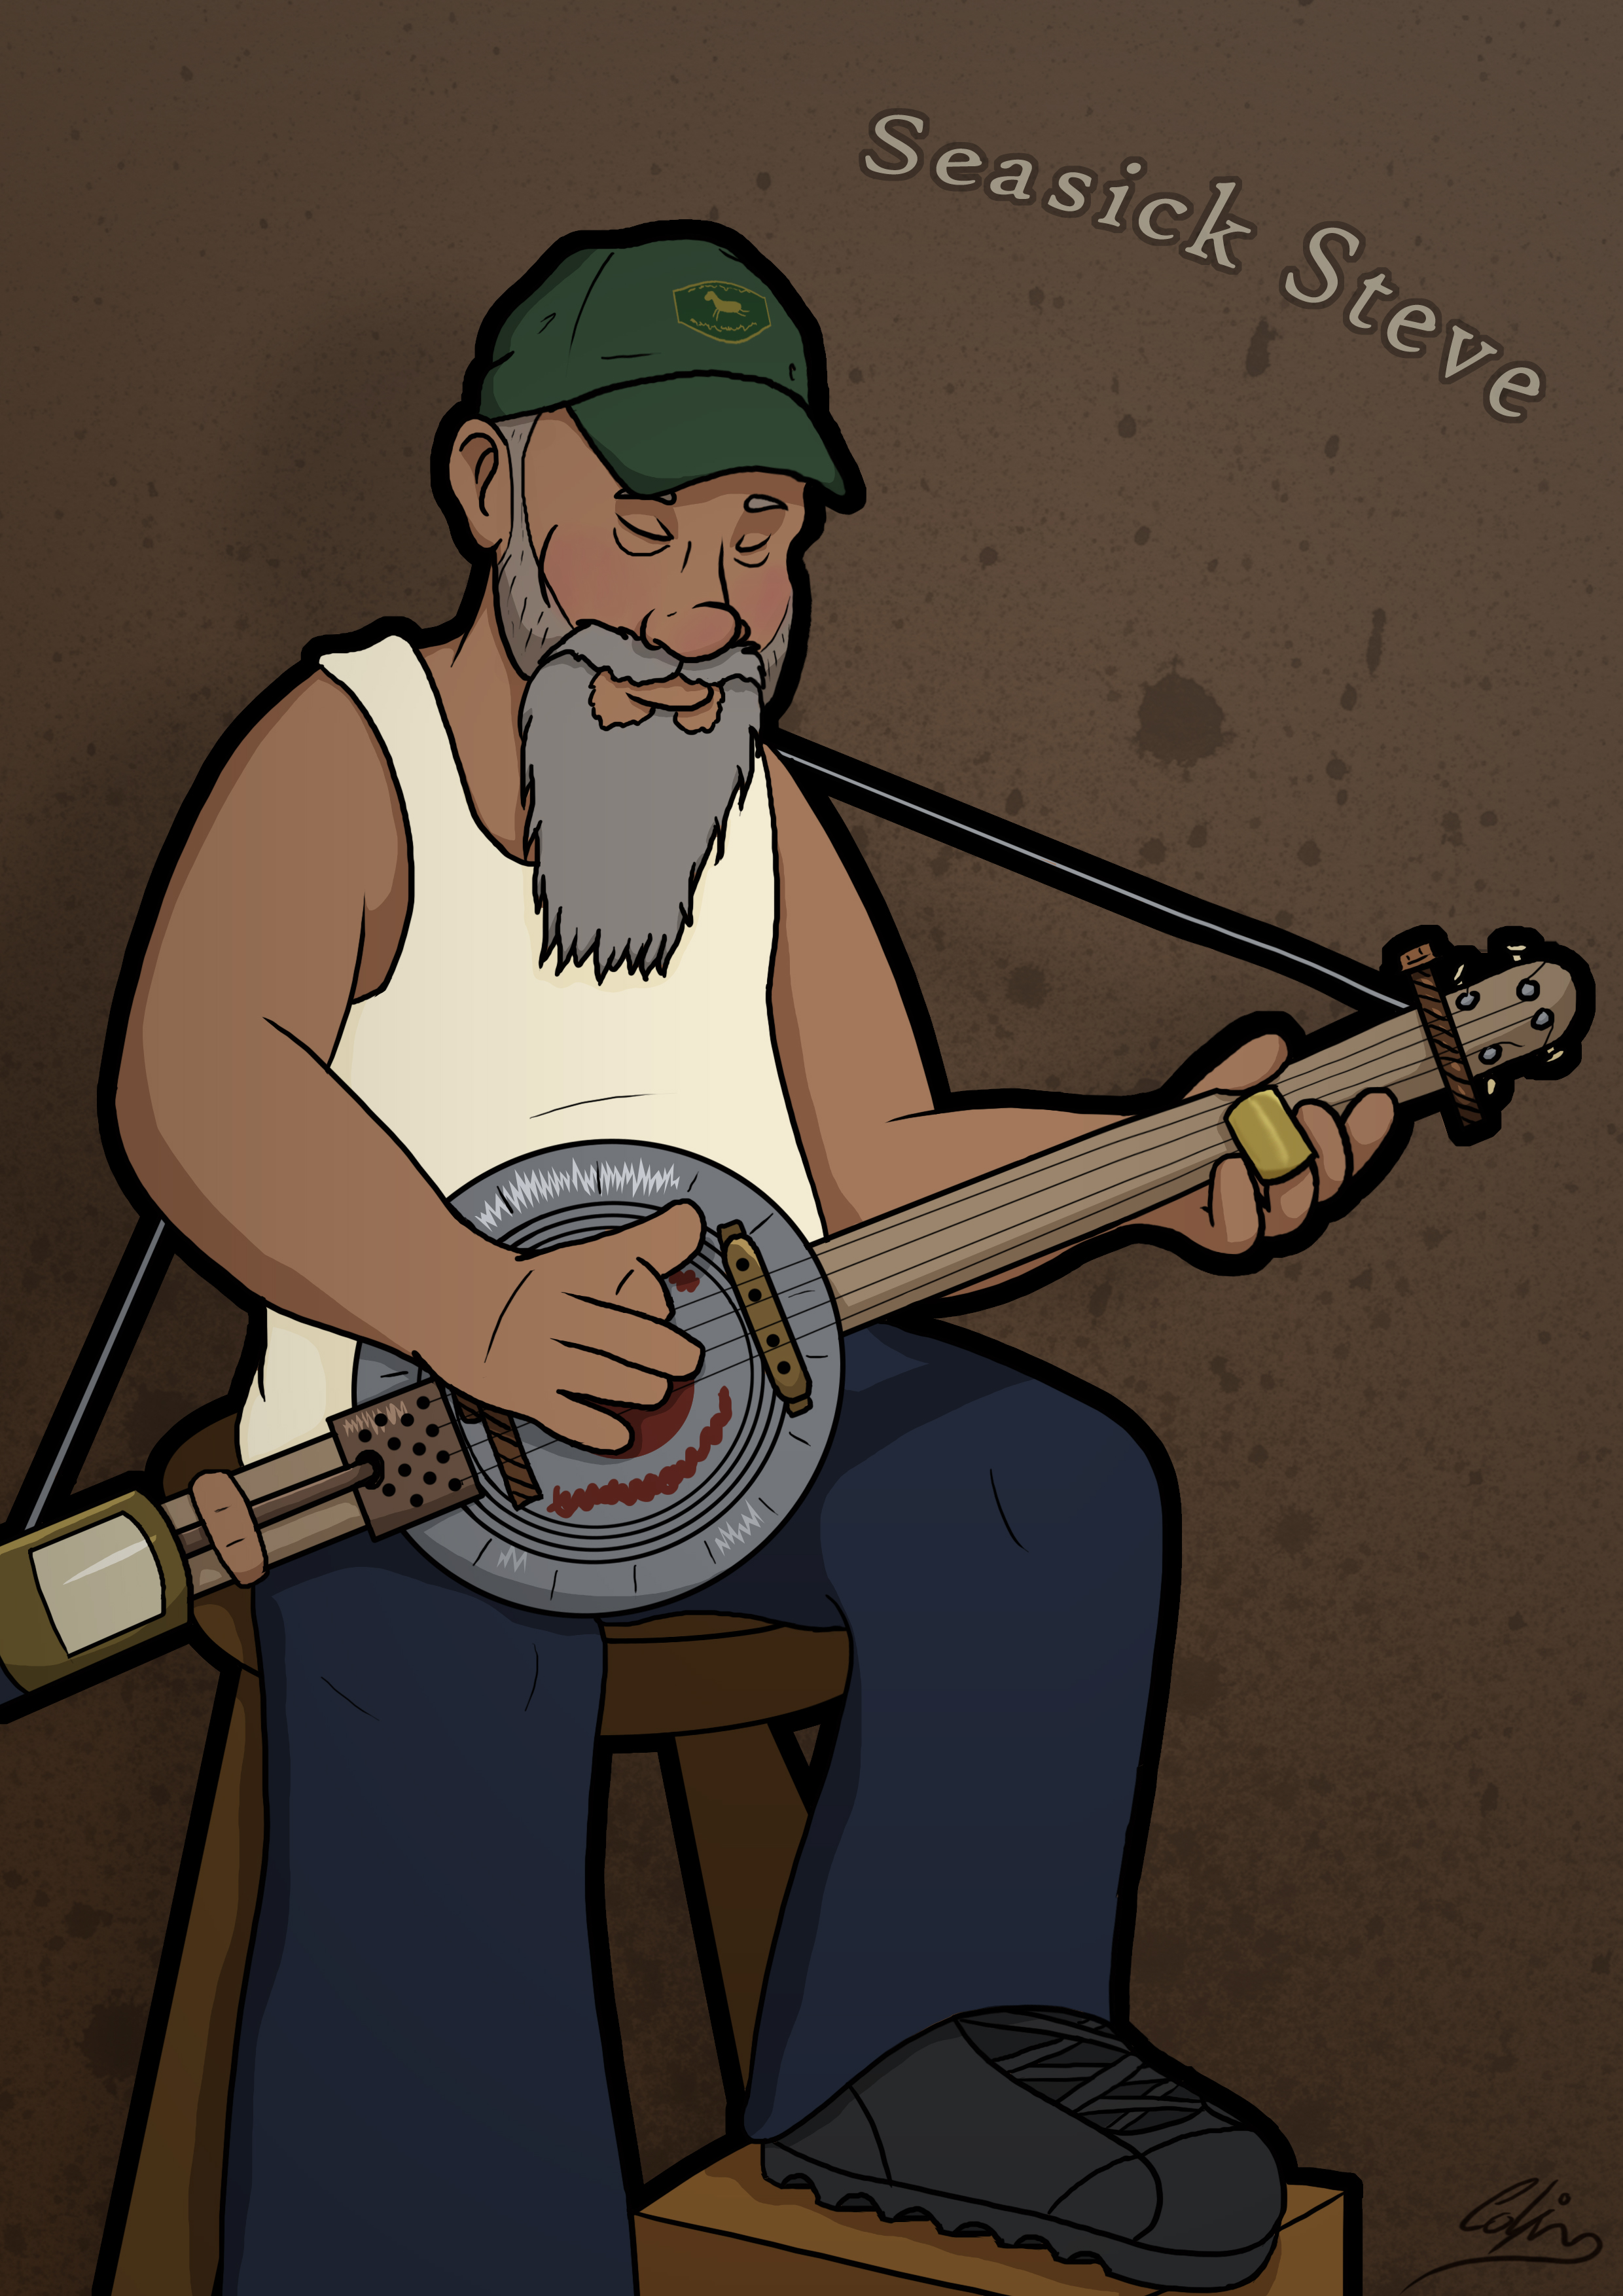 Seasick Steve Tribute